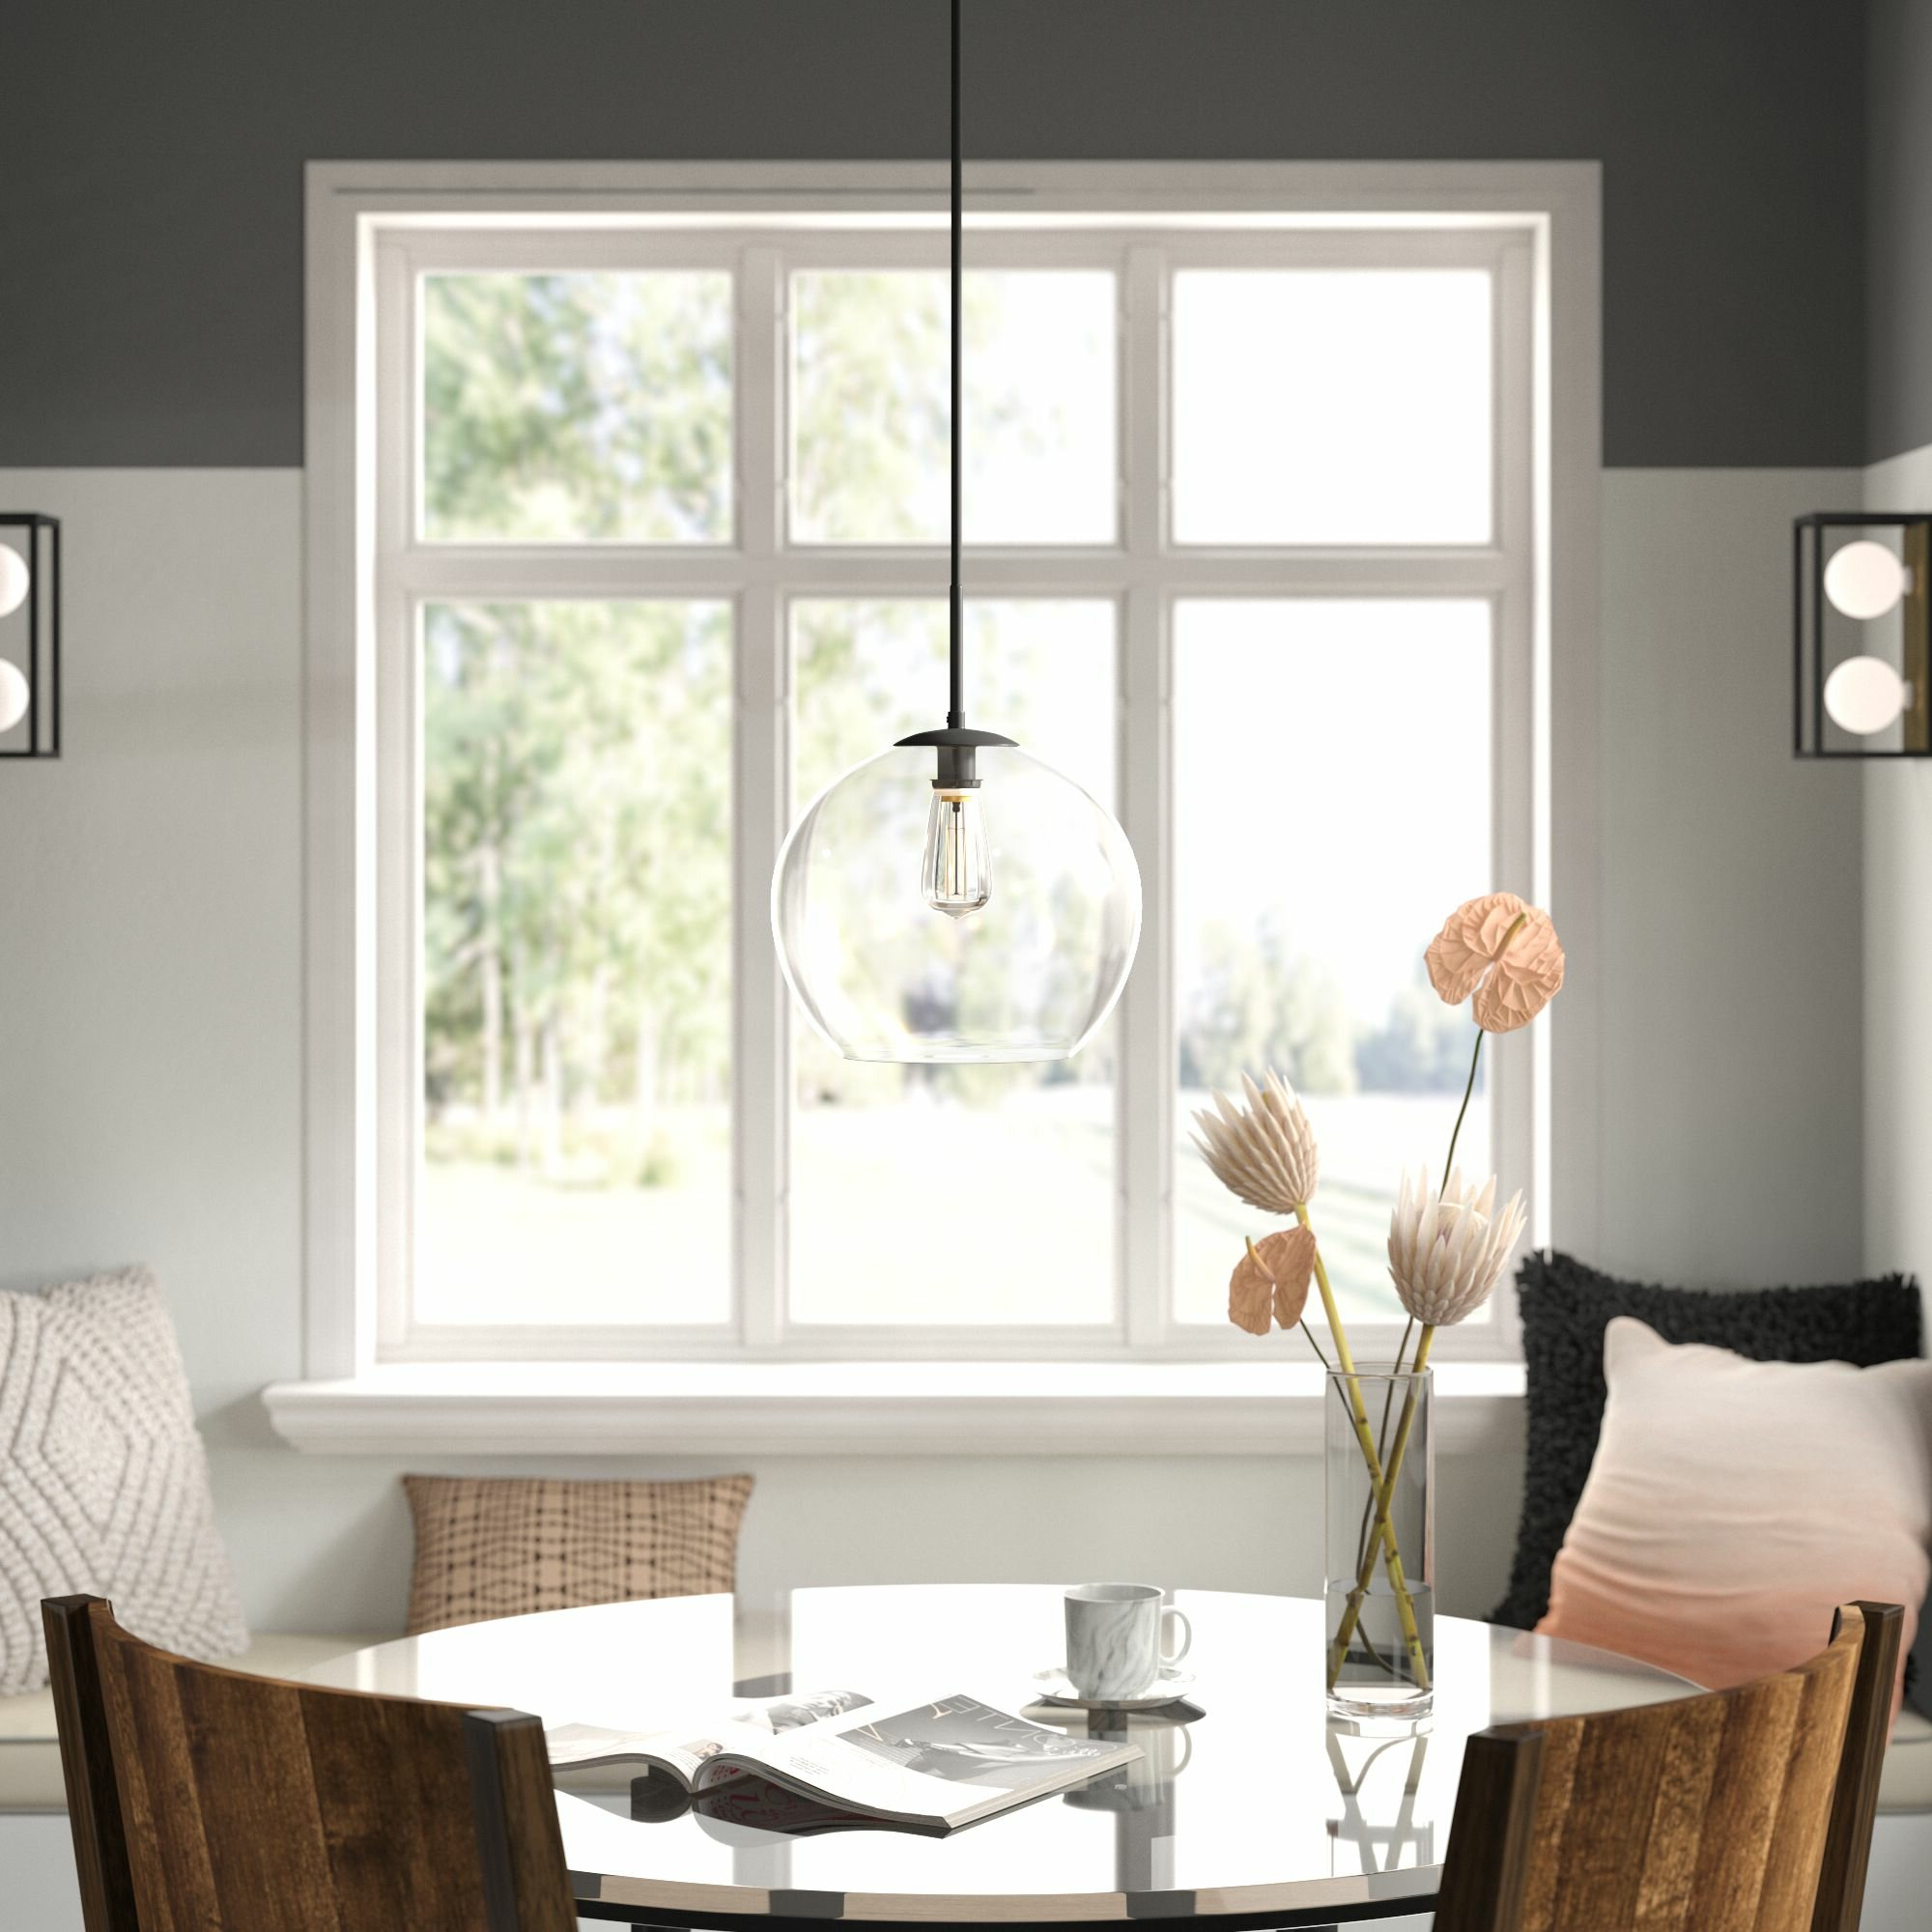 Devereaux 1 Light Single Globe Pendants Intended For Favorite Round Glass Pendant Light You'll Love In  (View 5 of 20)